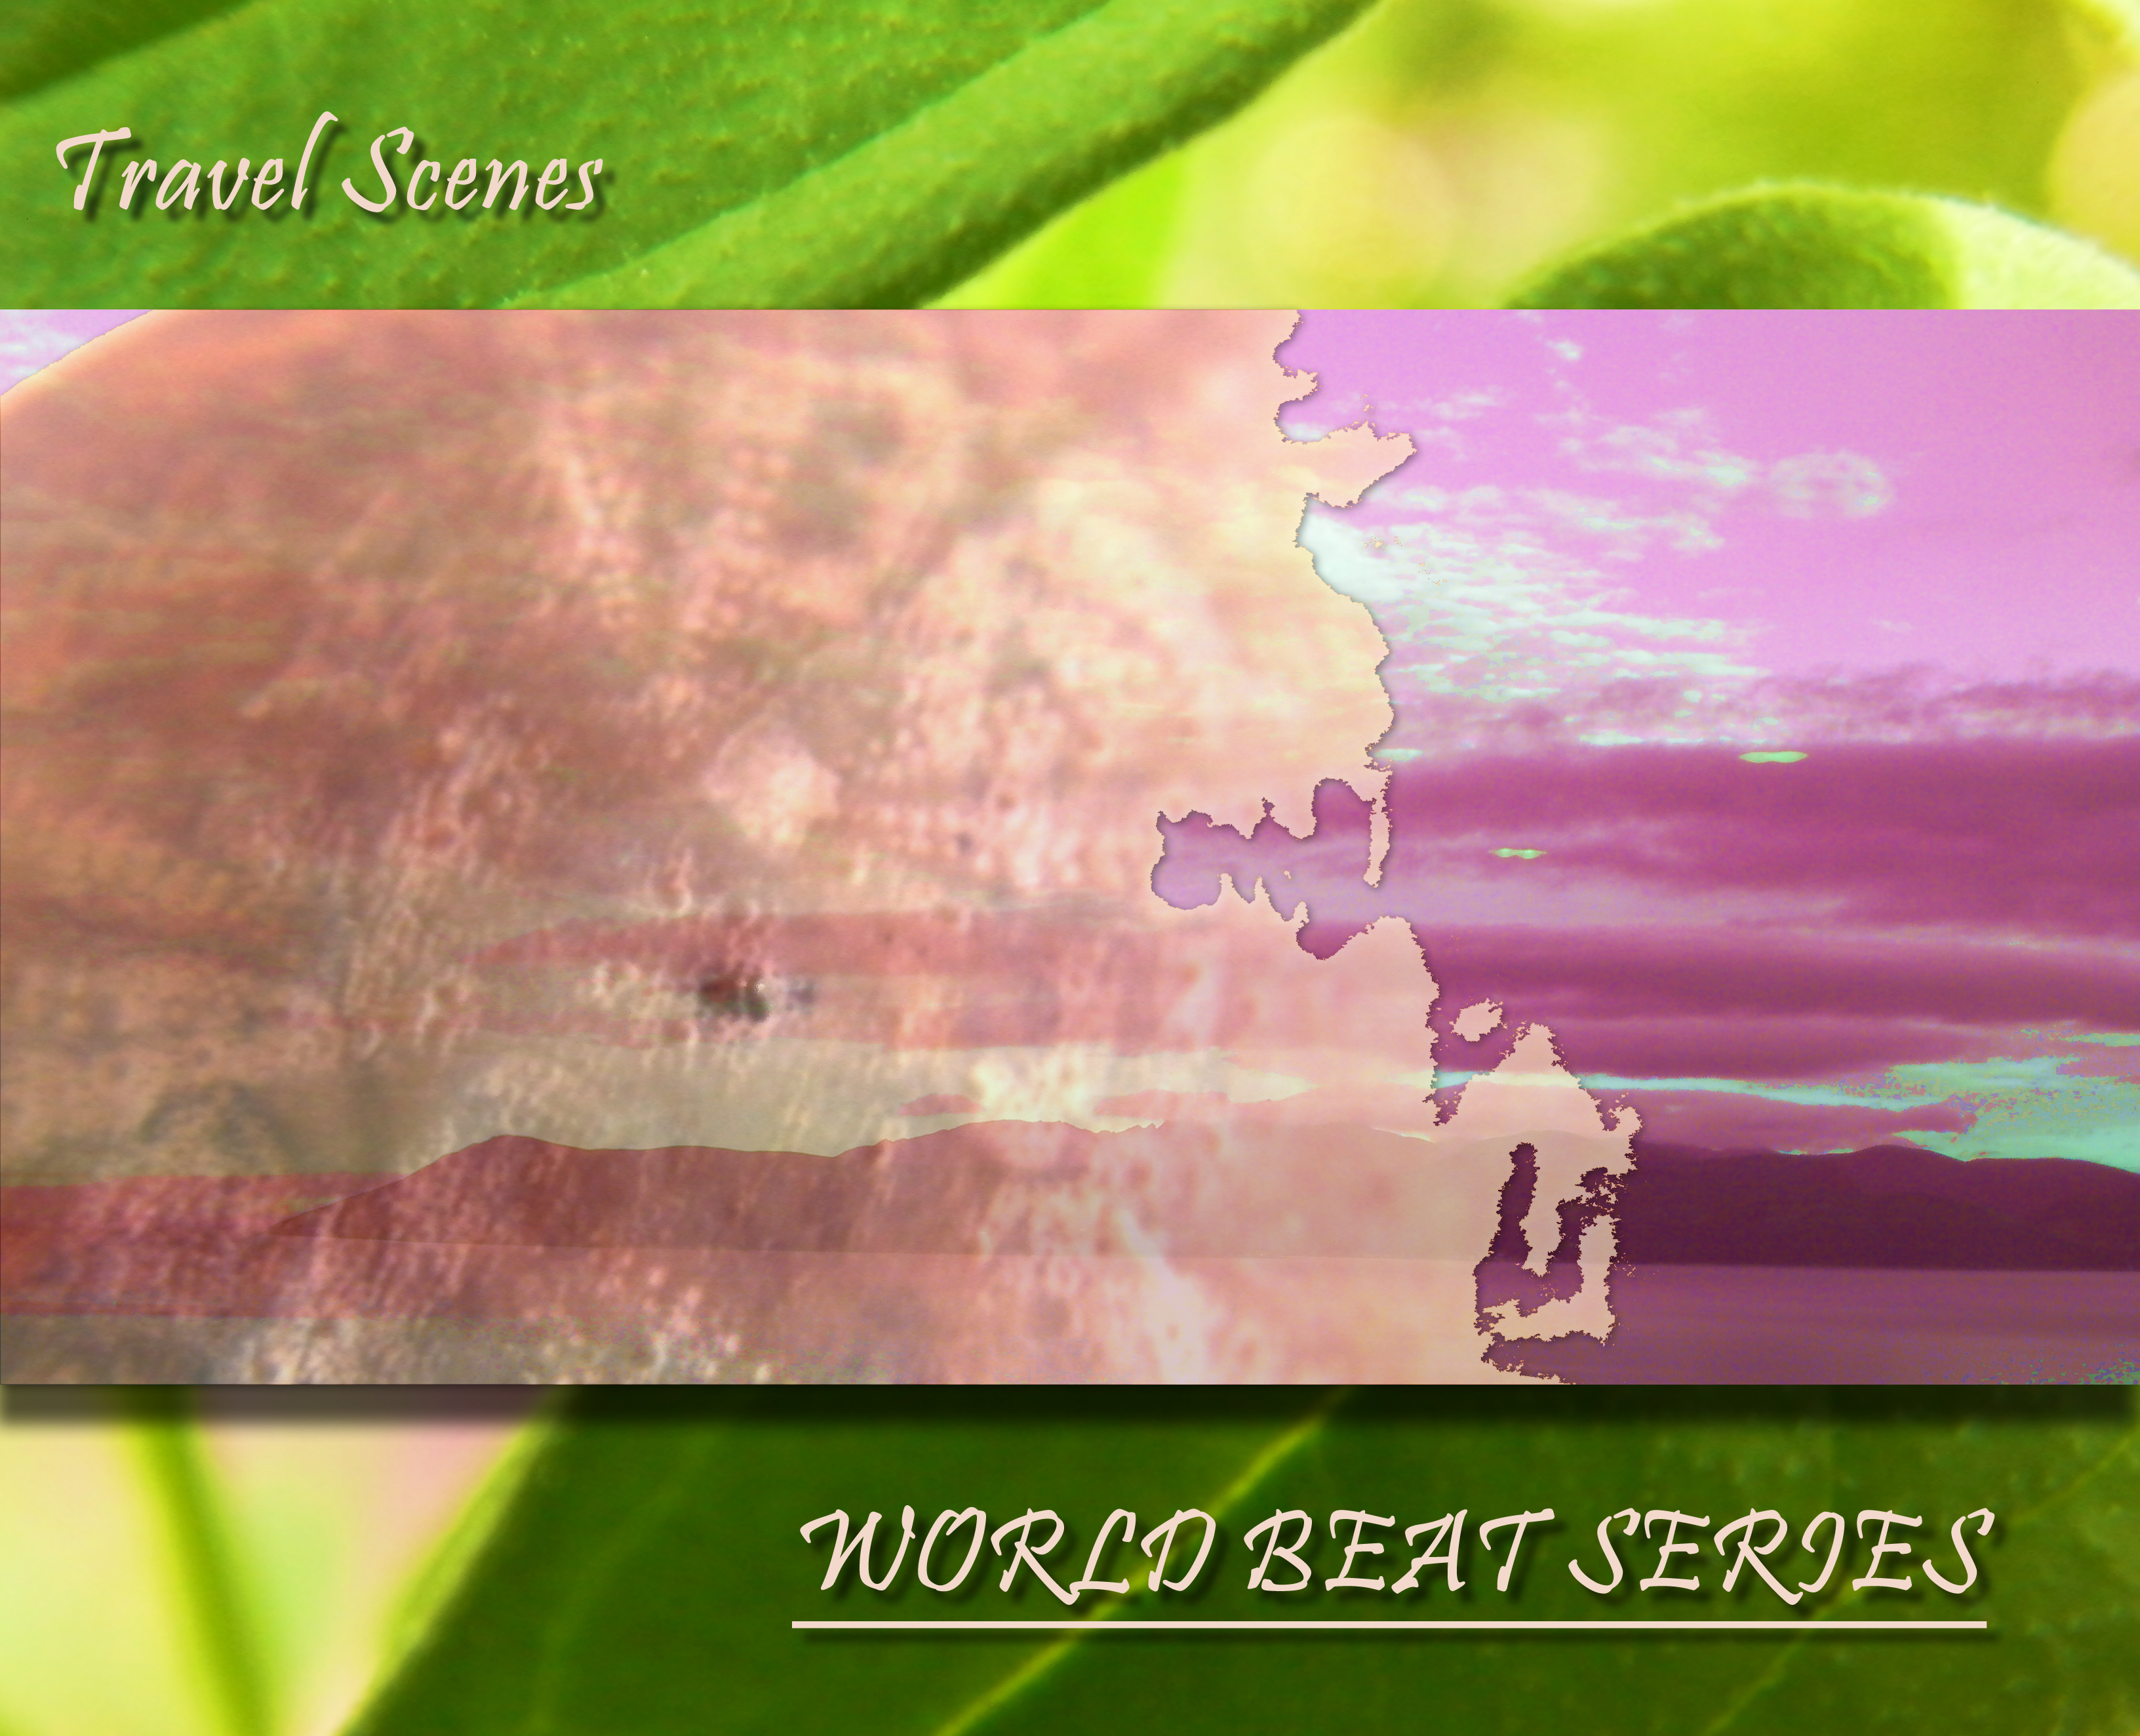 Film & TV music- Travel Scenes: World Beat Series